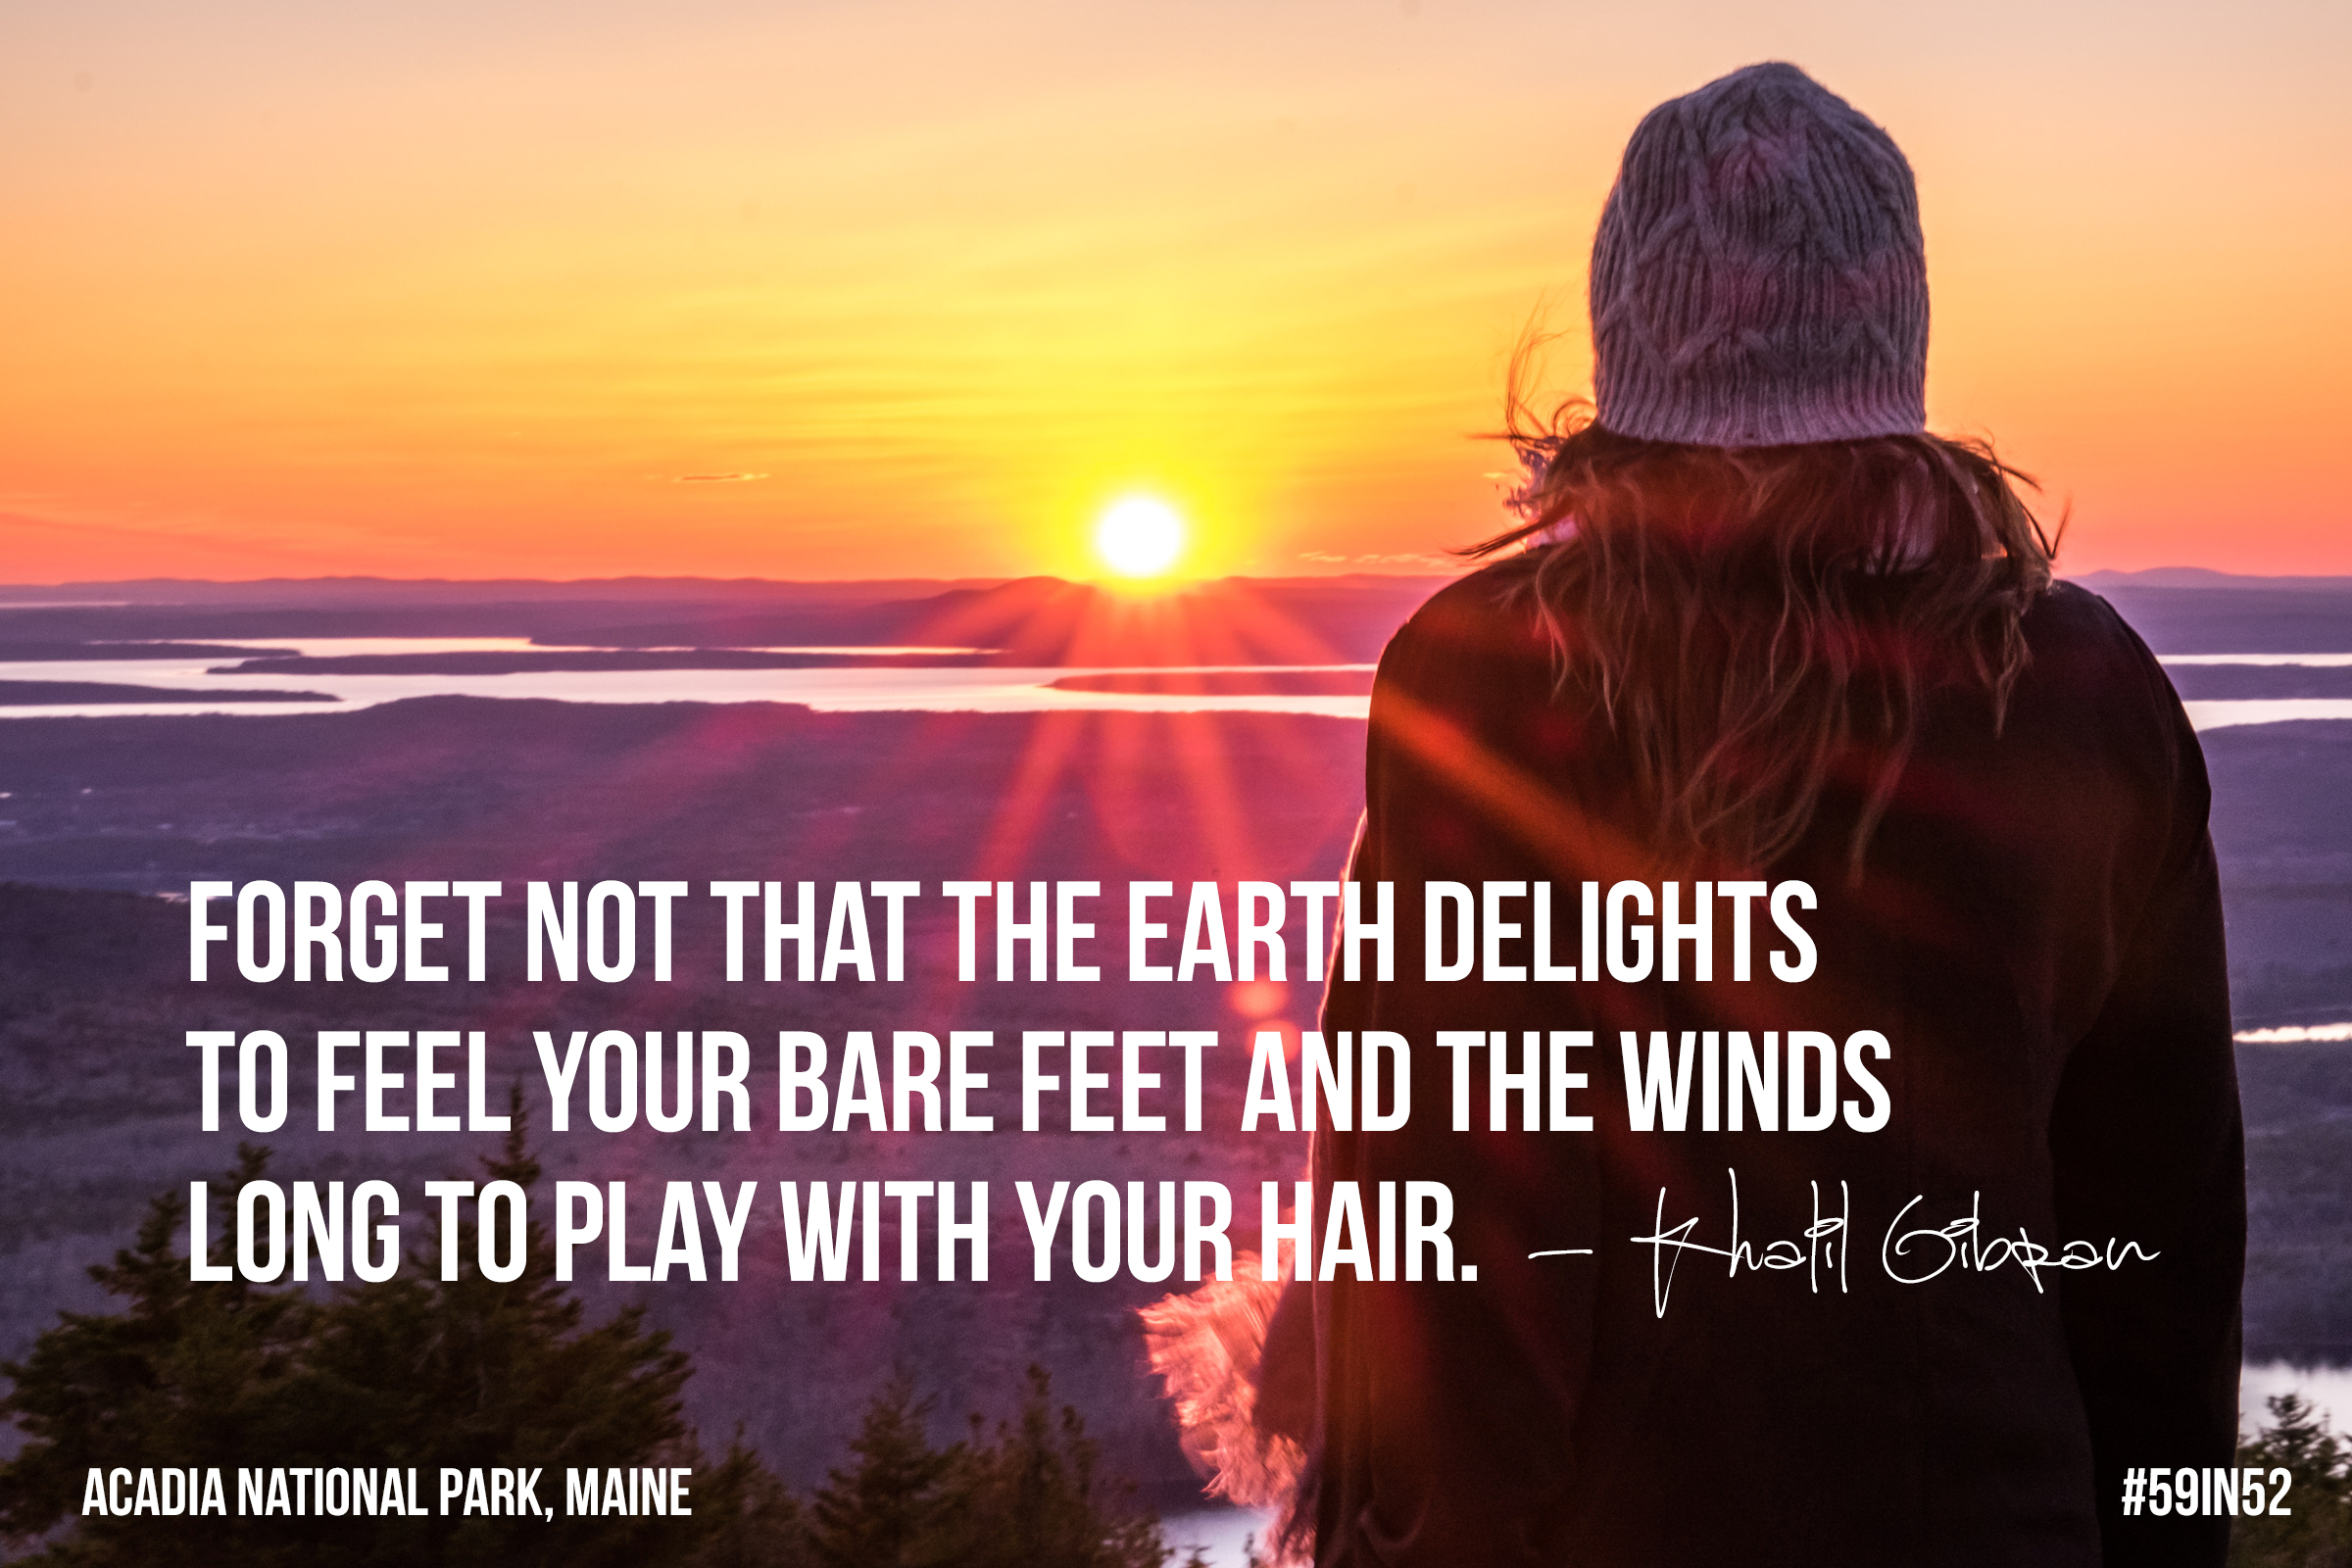 'Forget not that the Earth delights to feel your bare feet and the winds long to play with your hair.' Khalil Gibran